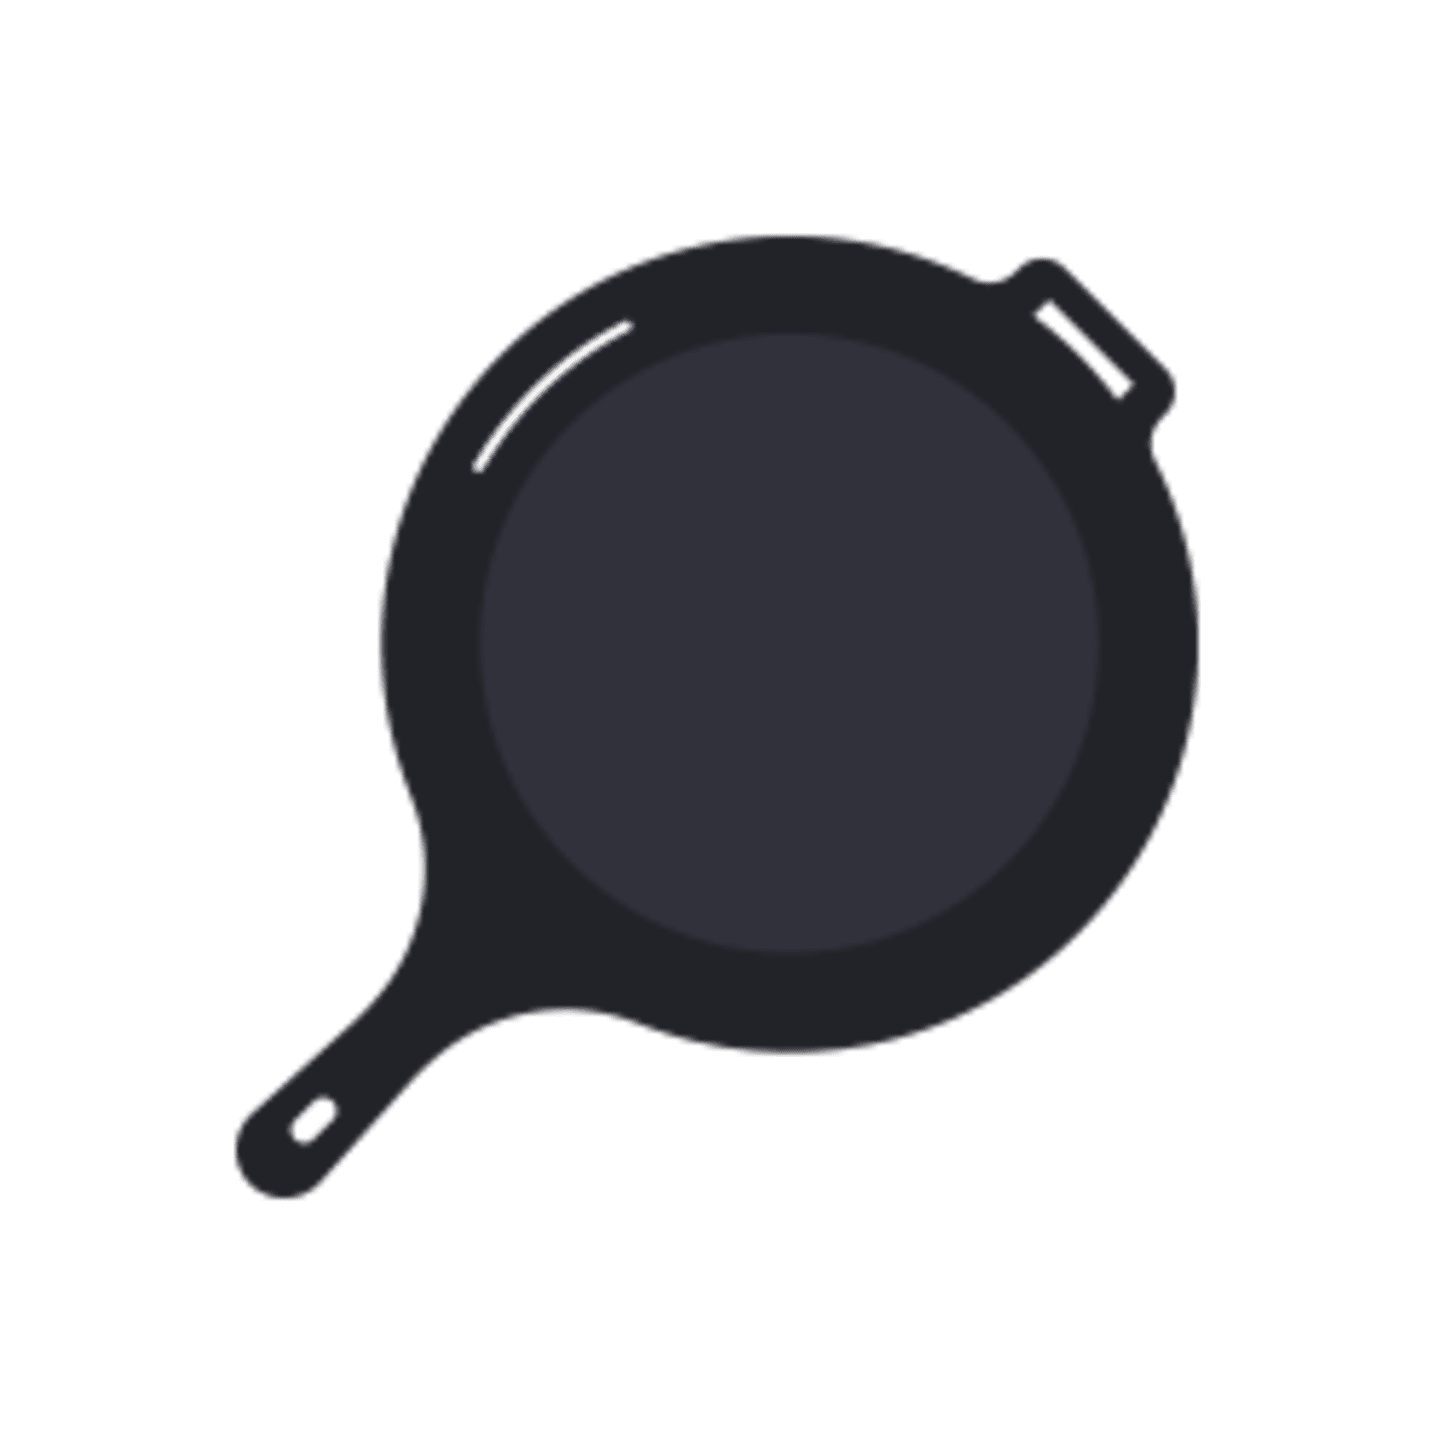 non-stick-icon.png